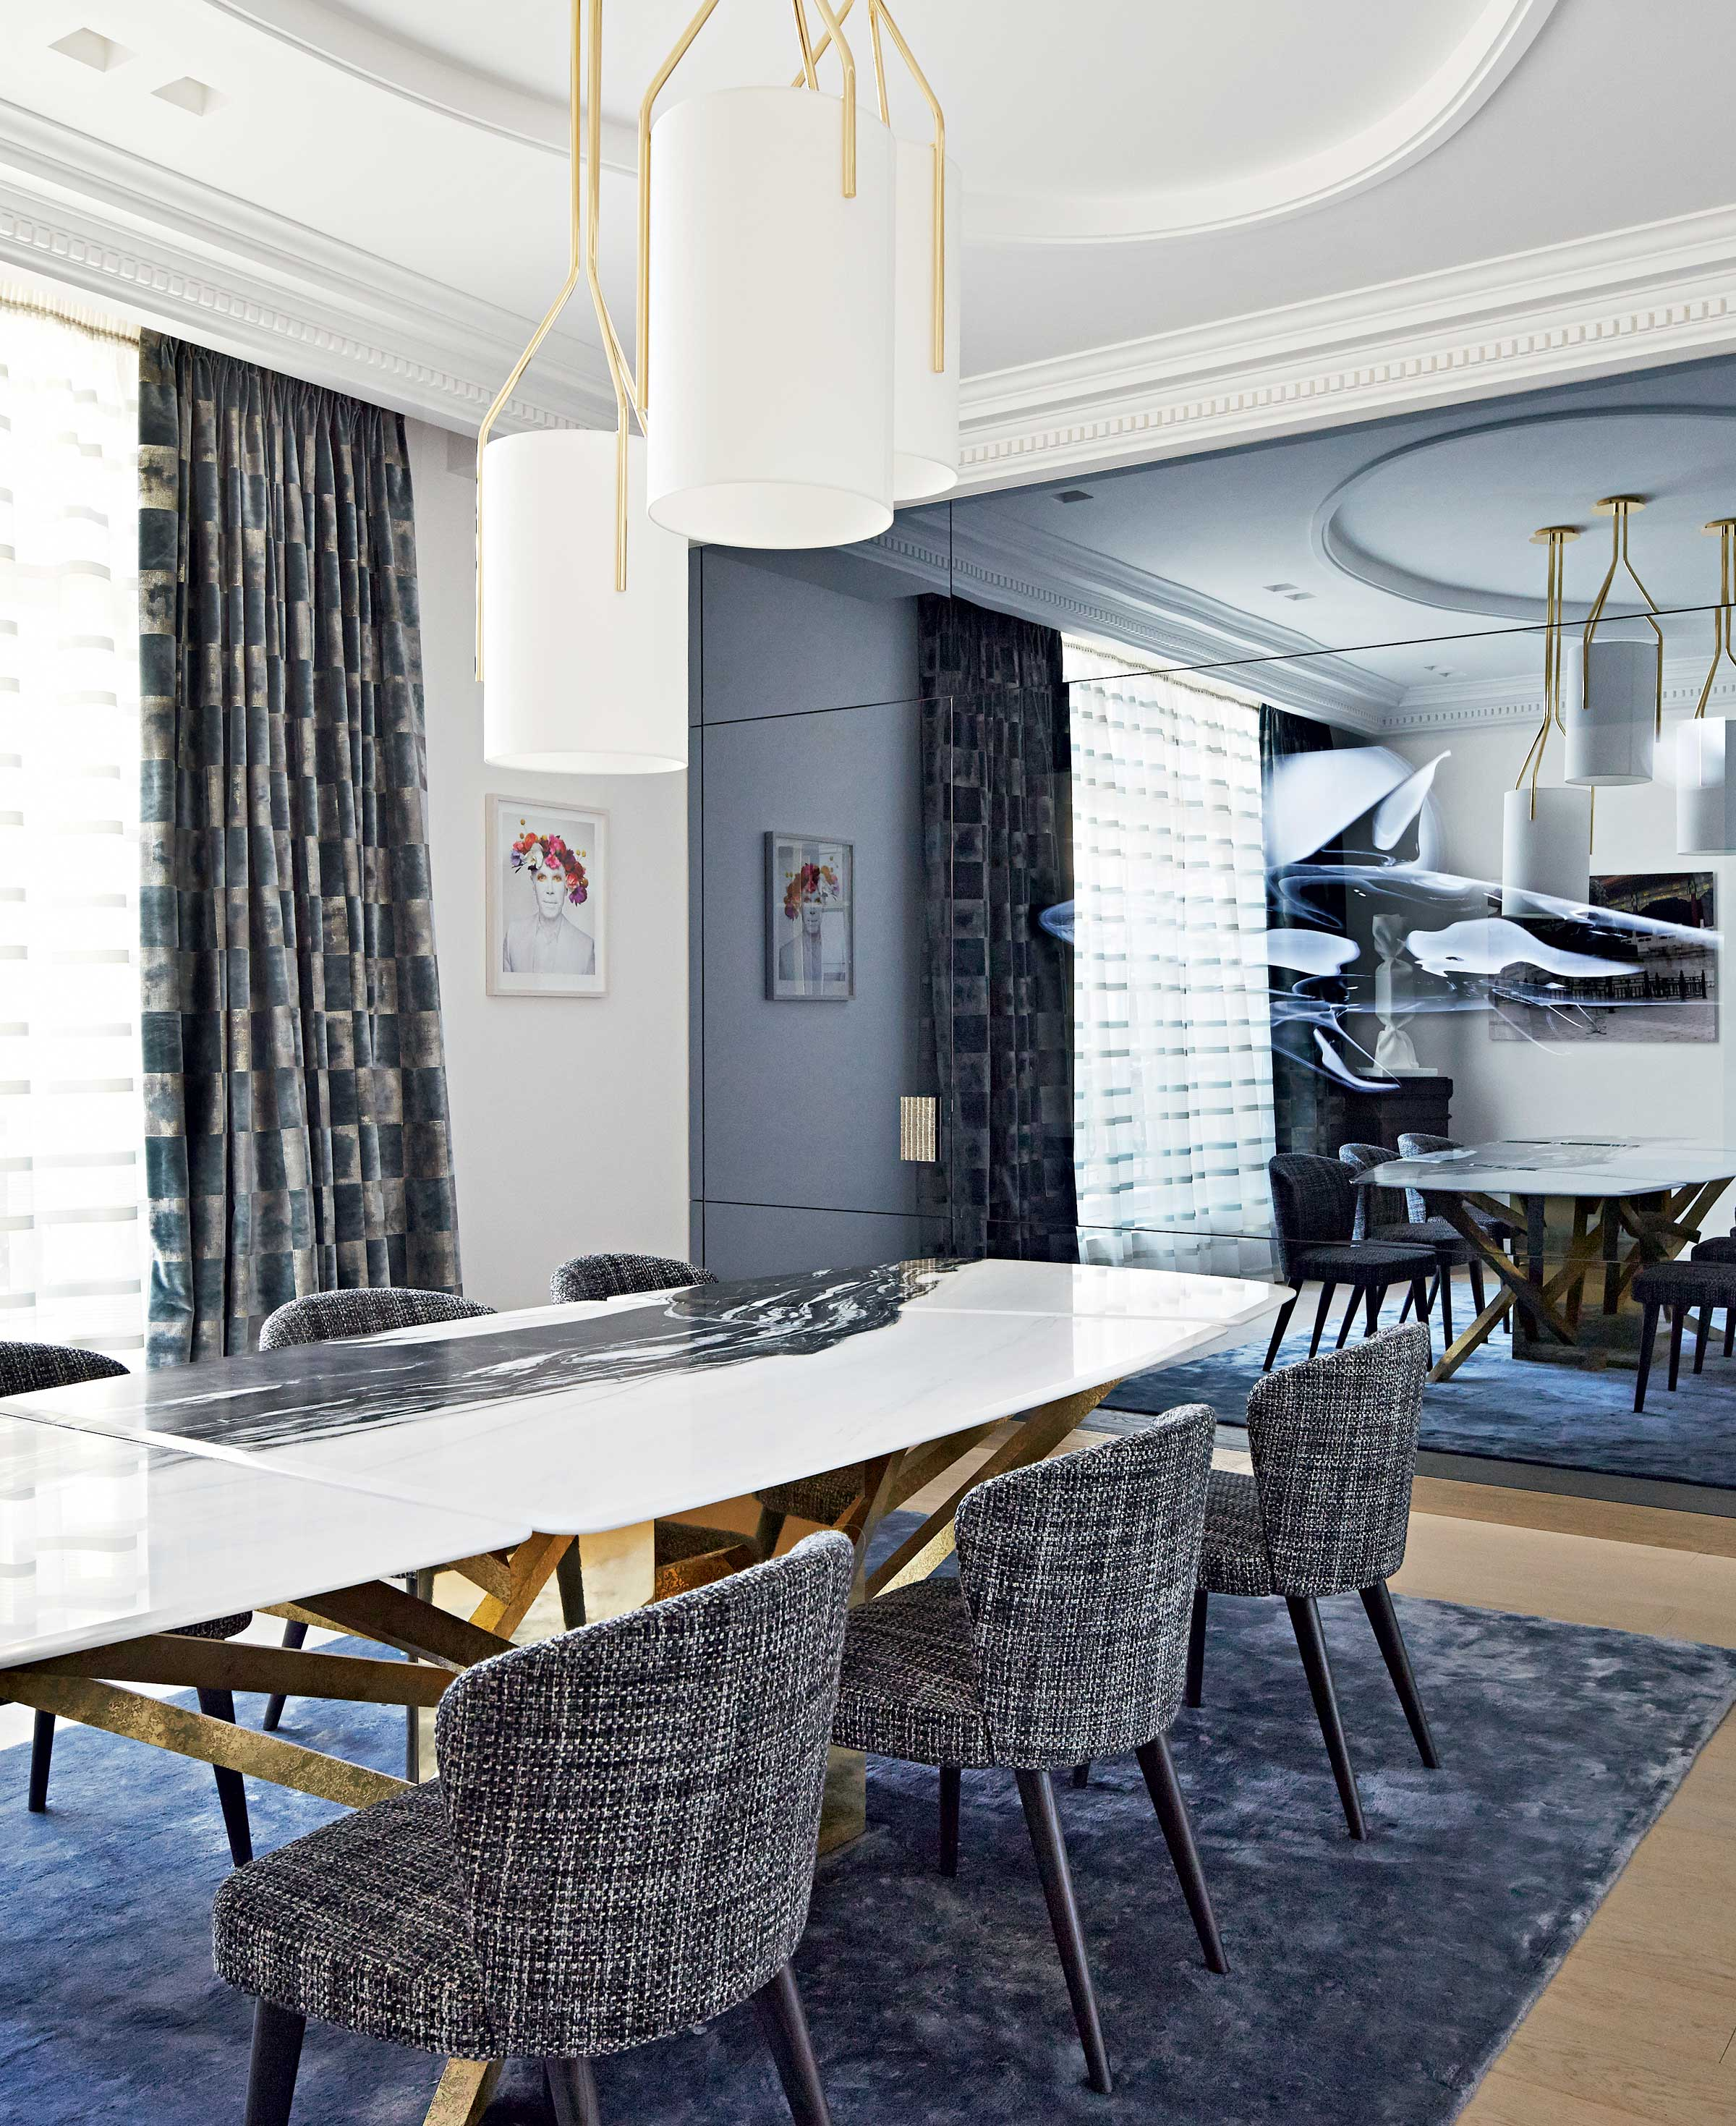 Unique vision: Renowned interior designer Stéphanie Coutas introduced statement artworks and bespoke elements to the apartment, such as an integrated original video installation, as well as incorporating a music and video system throughout.